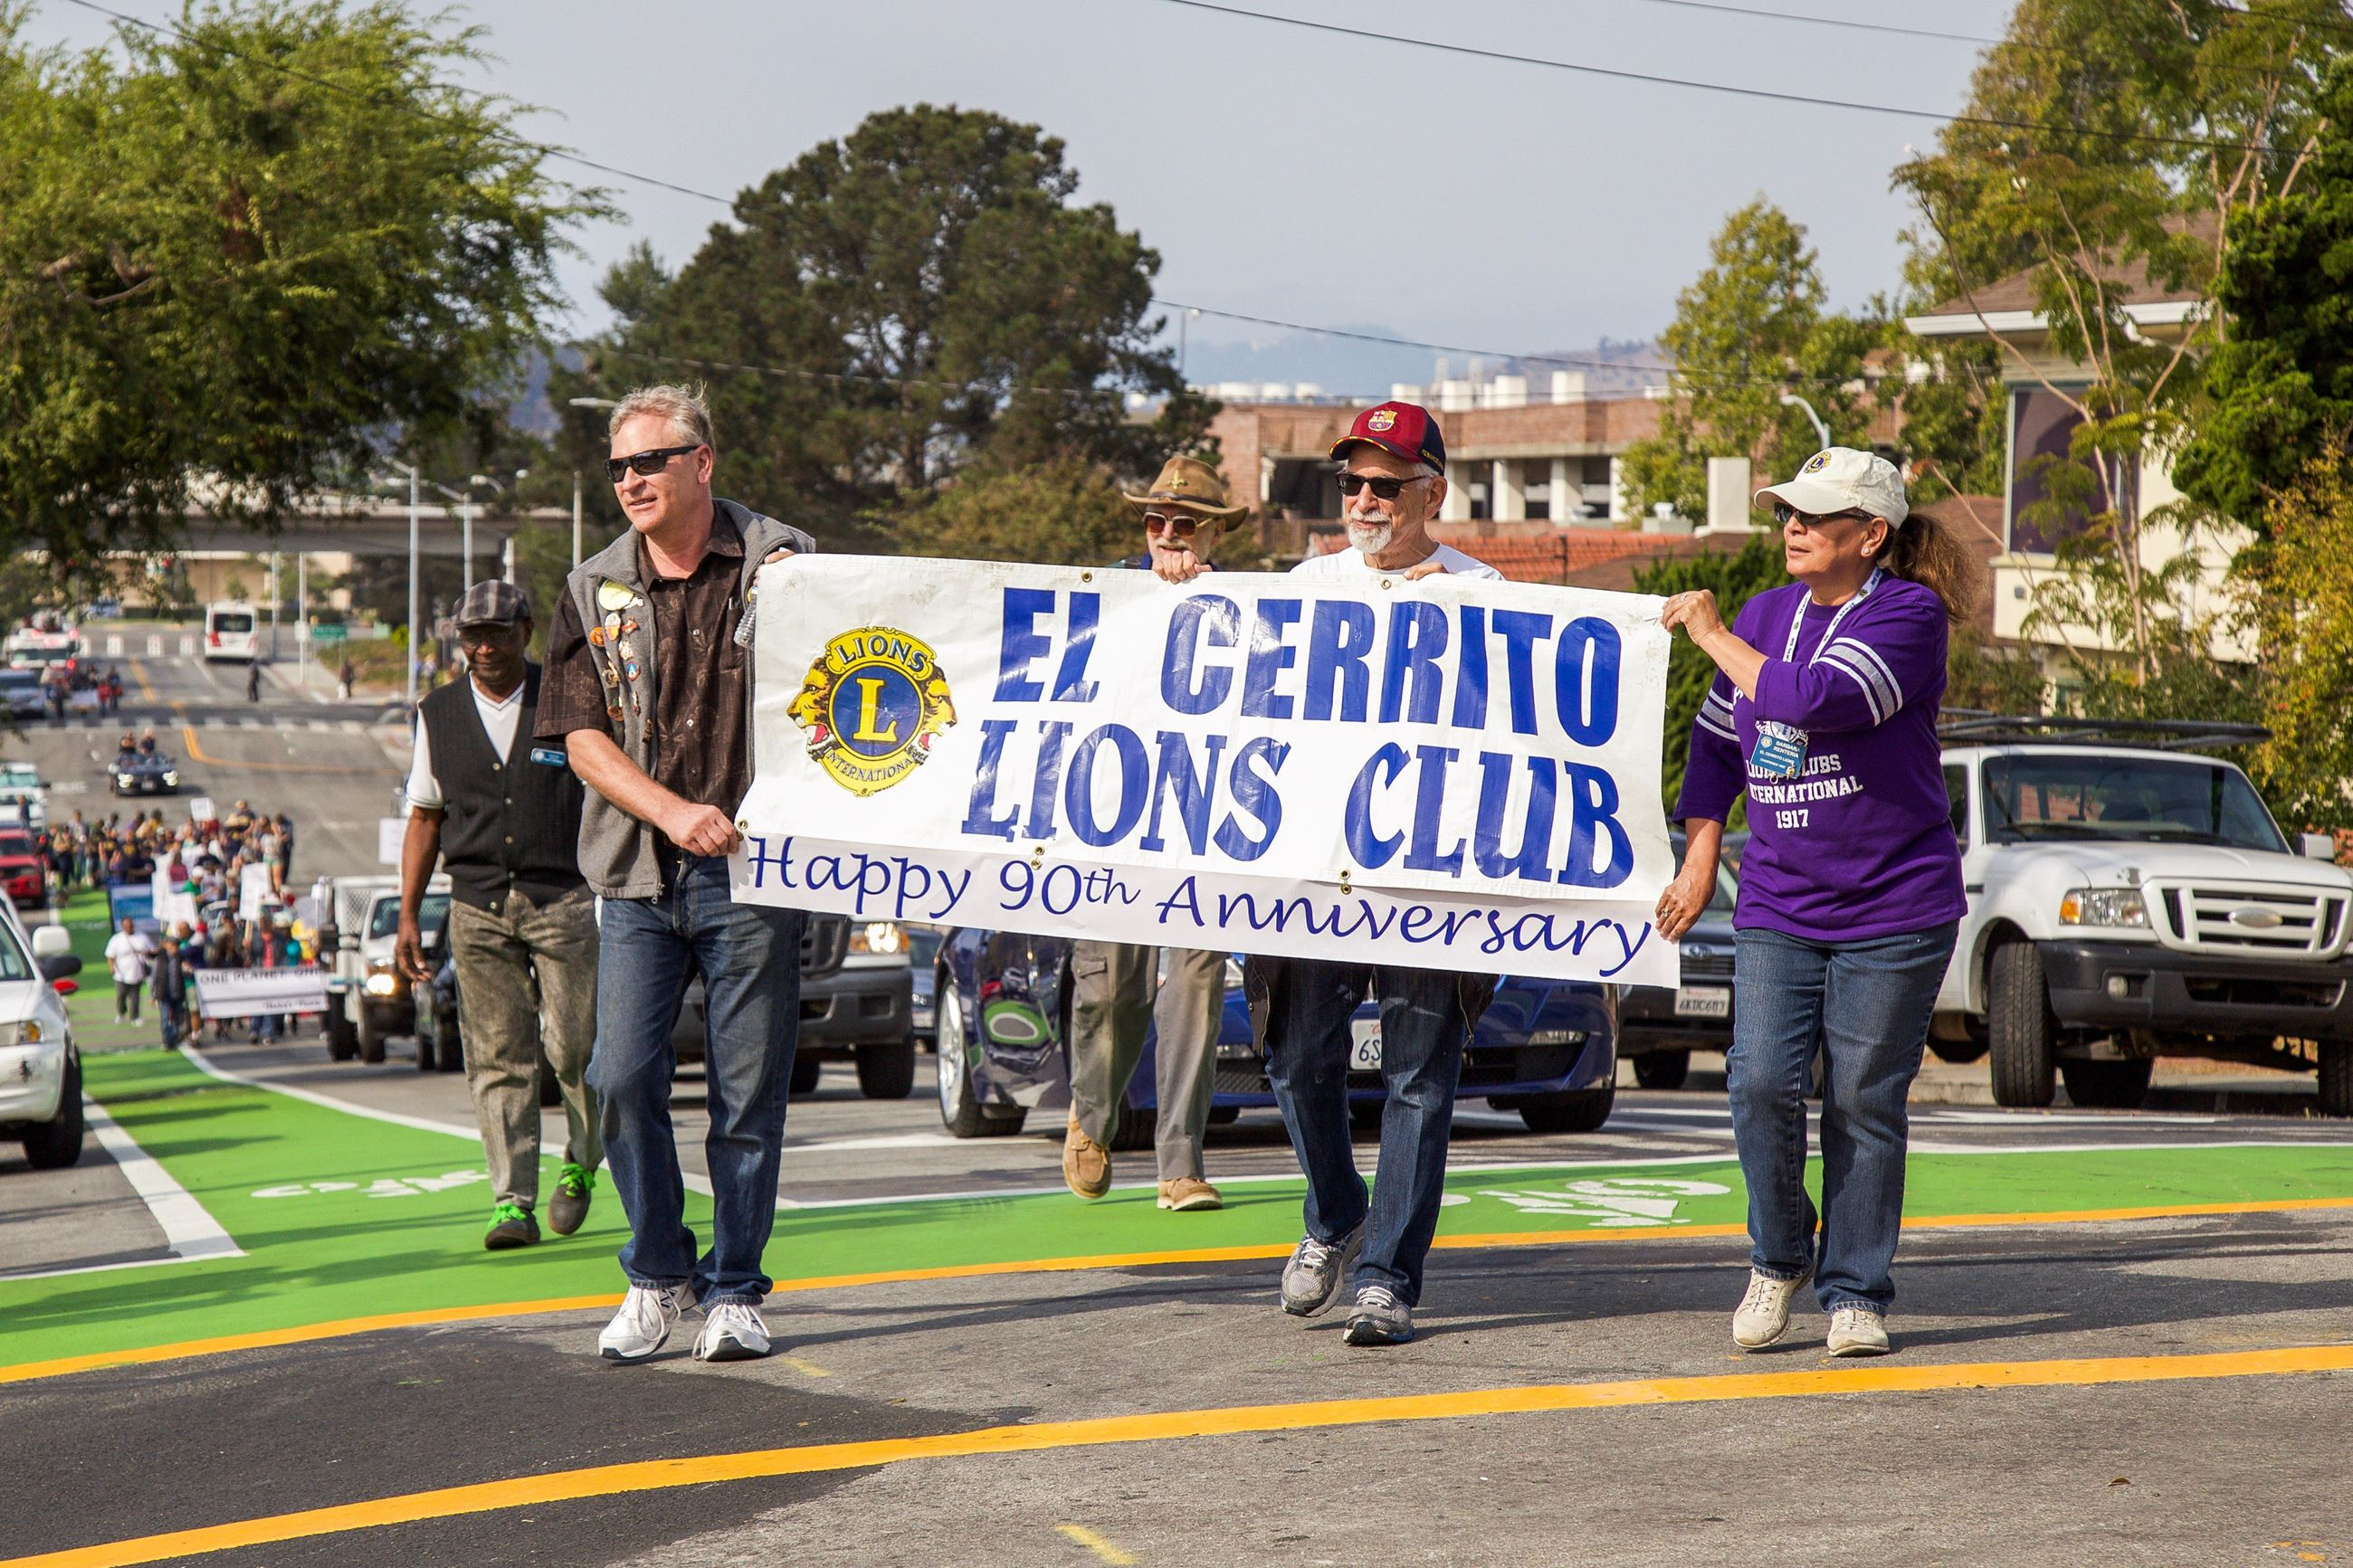 242 Lions in Parade - Photo by Marin Stuart